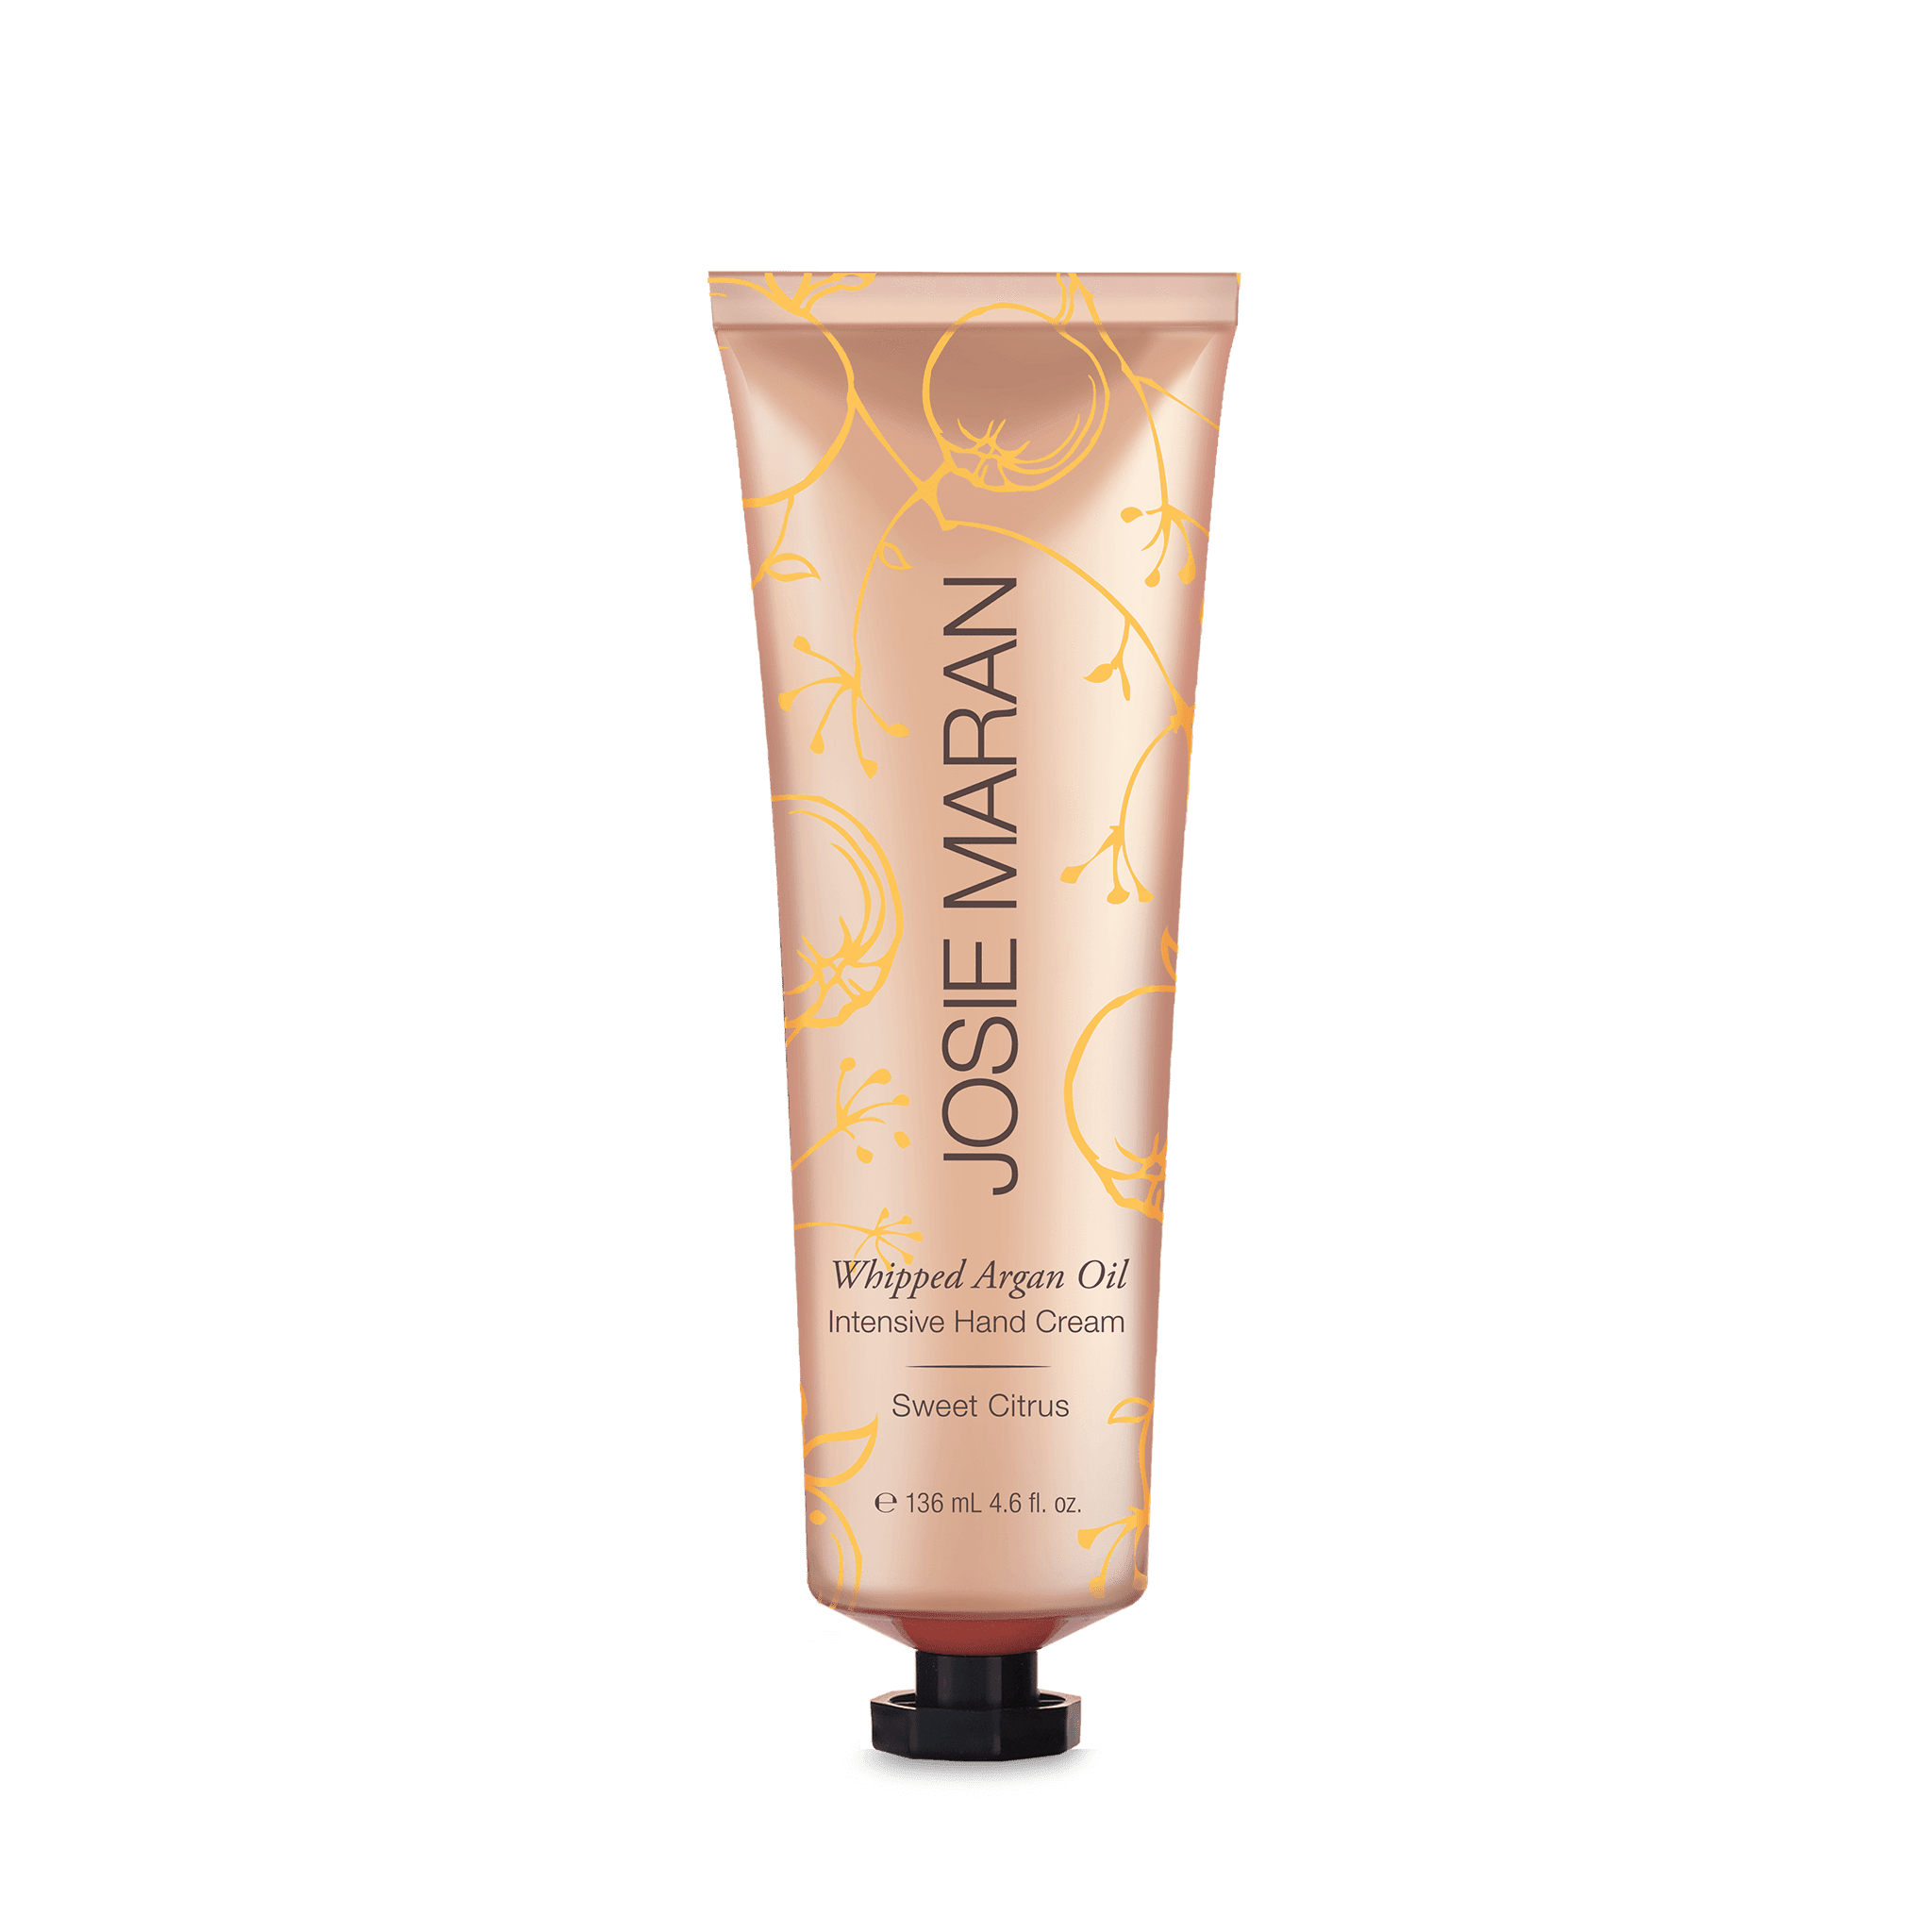 Whipped Argan Oil Intensive Hand Cream Luxury Size